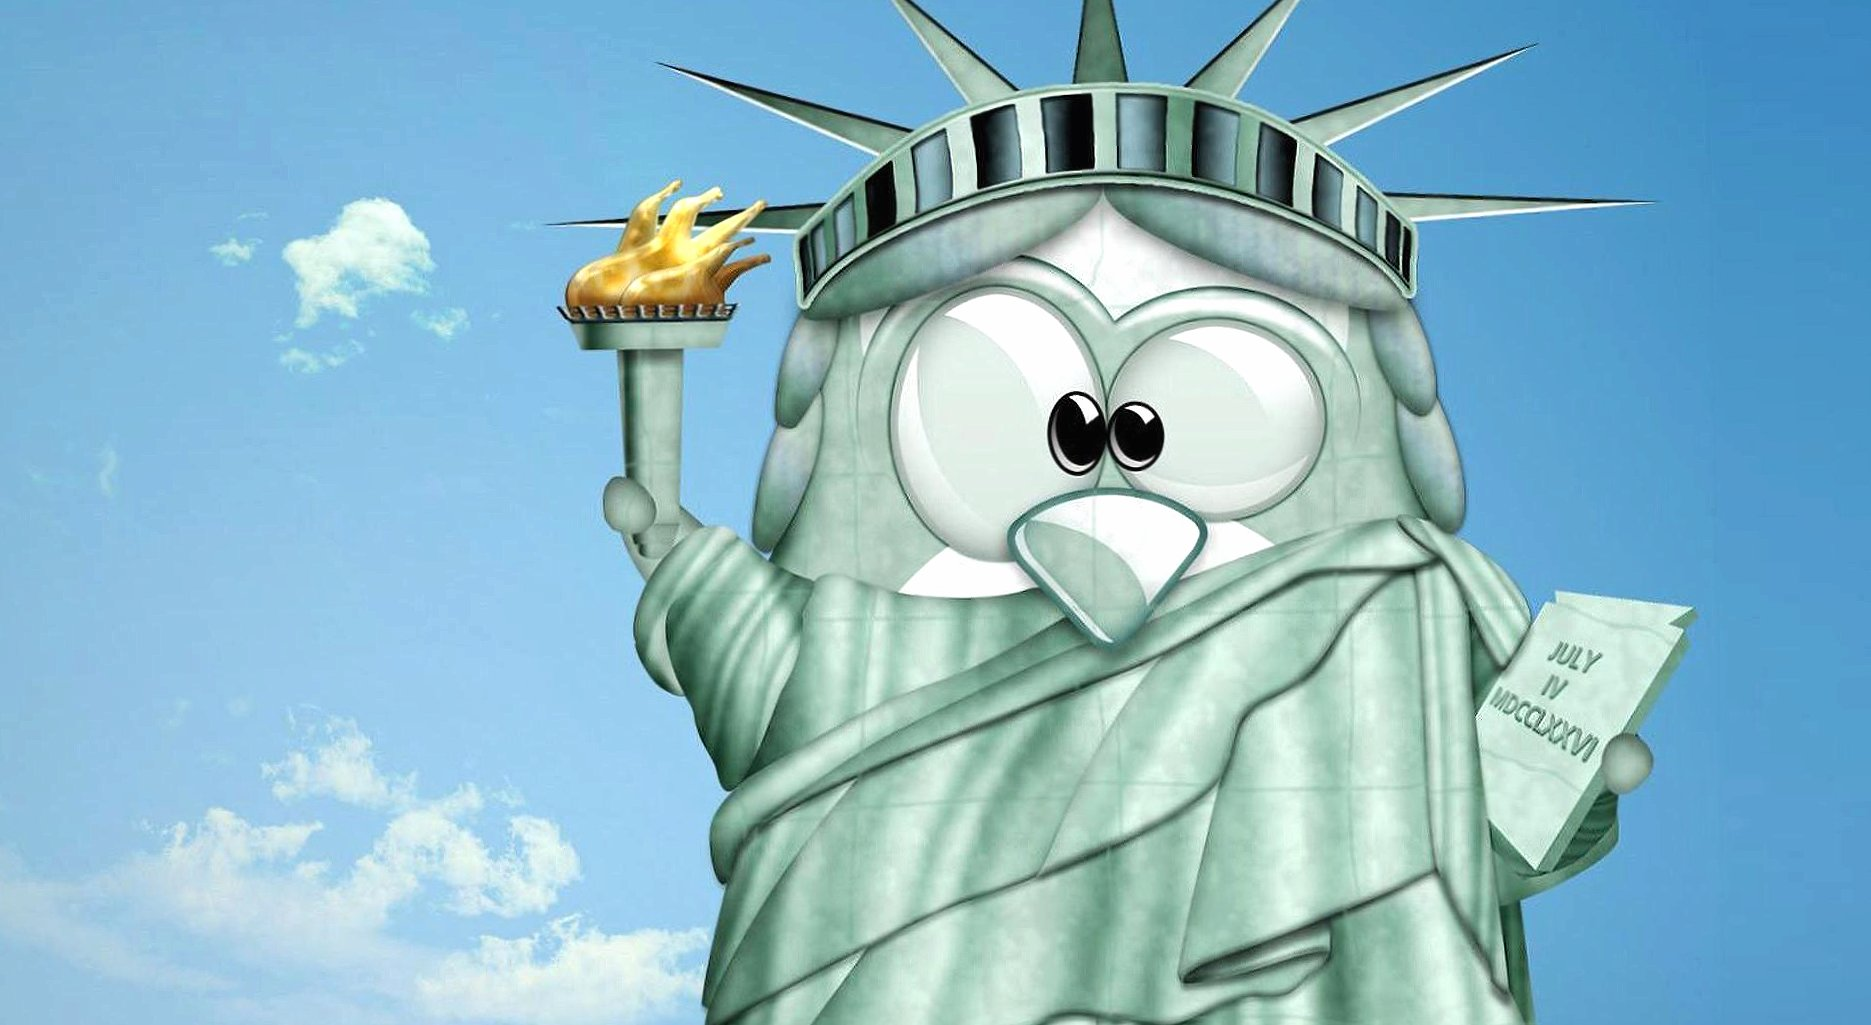 Funny bird statue of liberty at 1280 x 960 size wallpapers HD quality